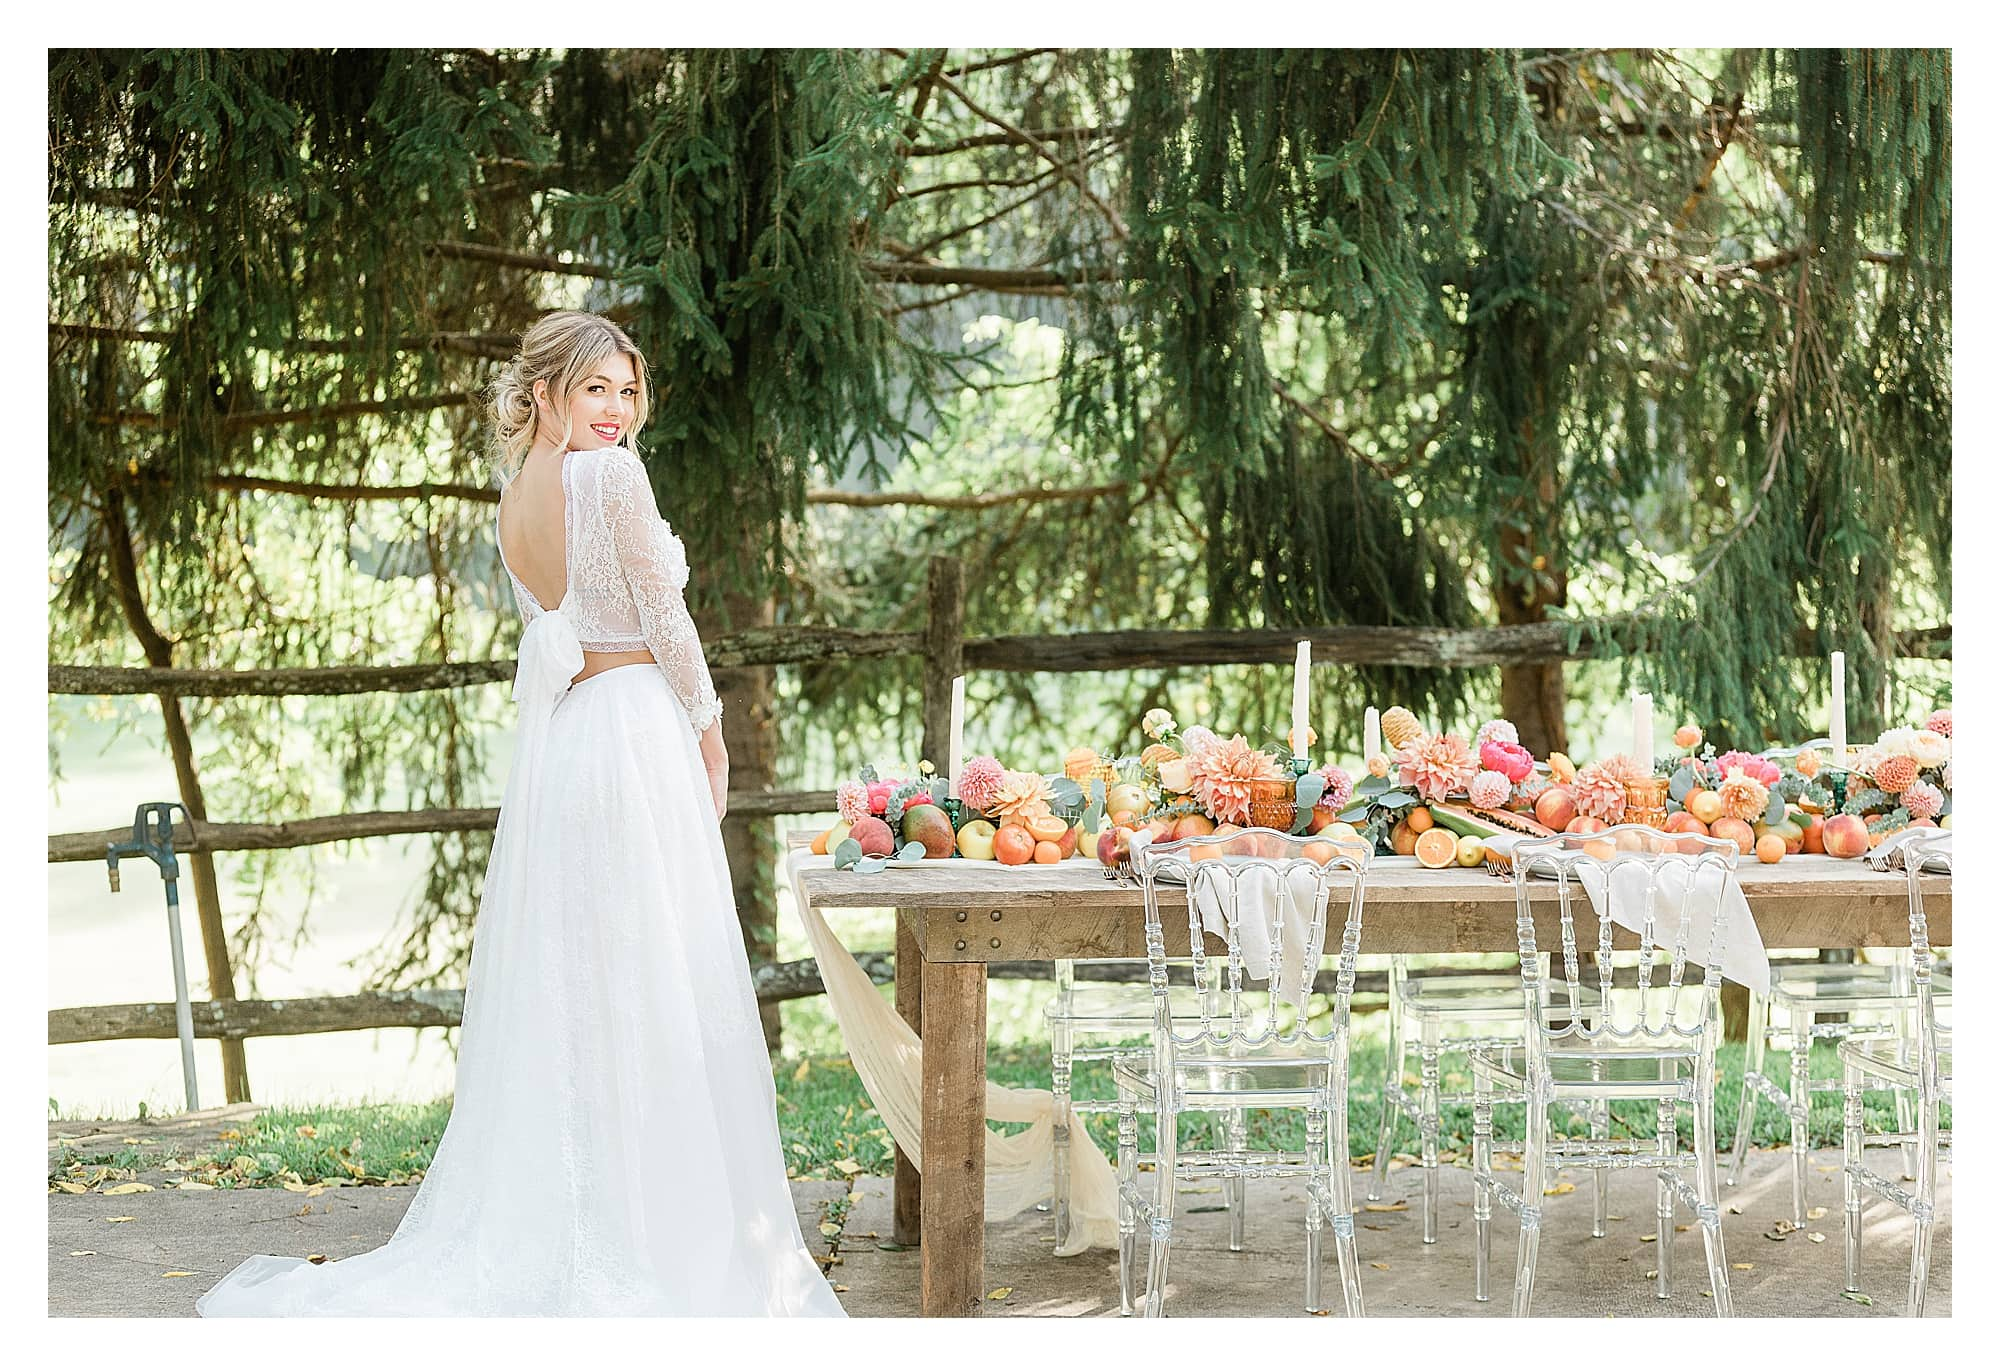 Rustic wooden table and clear plastic chairs with peach, pink and yellow citrus fruits as centrepiece down center of table with white candles with bride in white two piece lace gown standing beside smiling